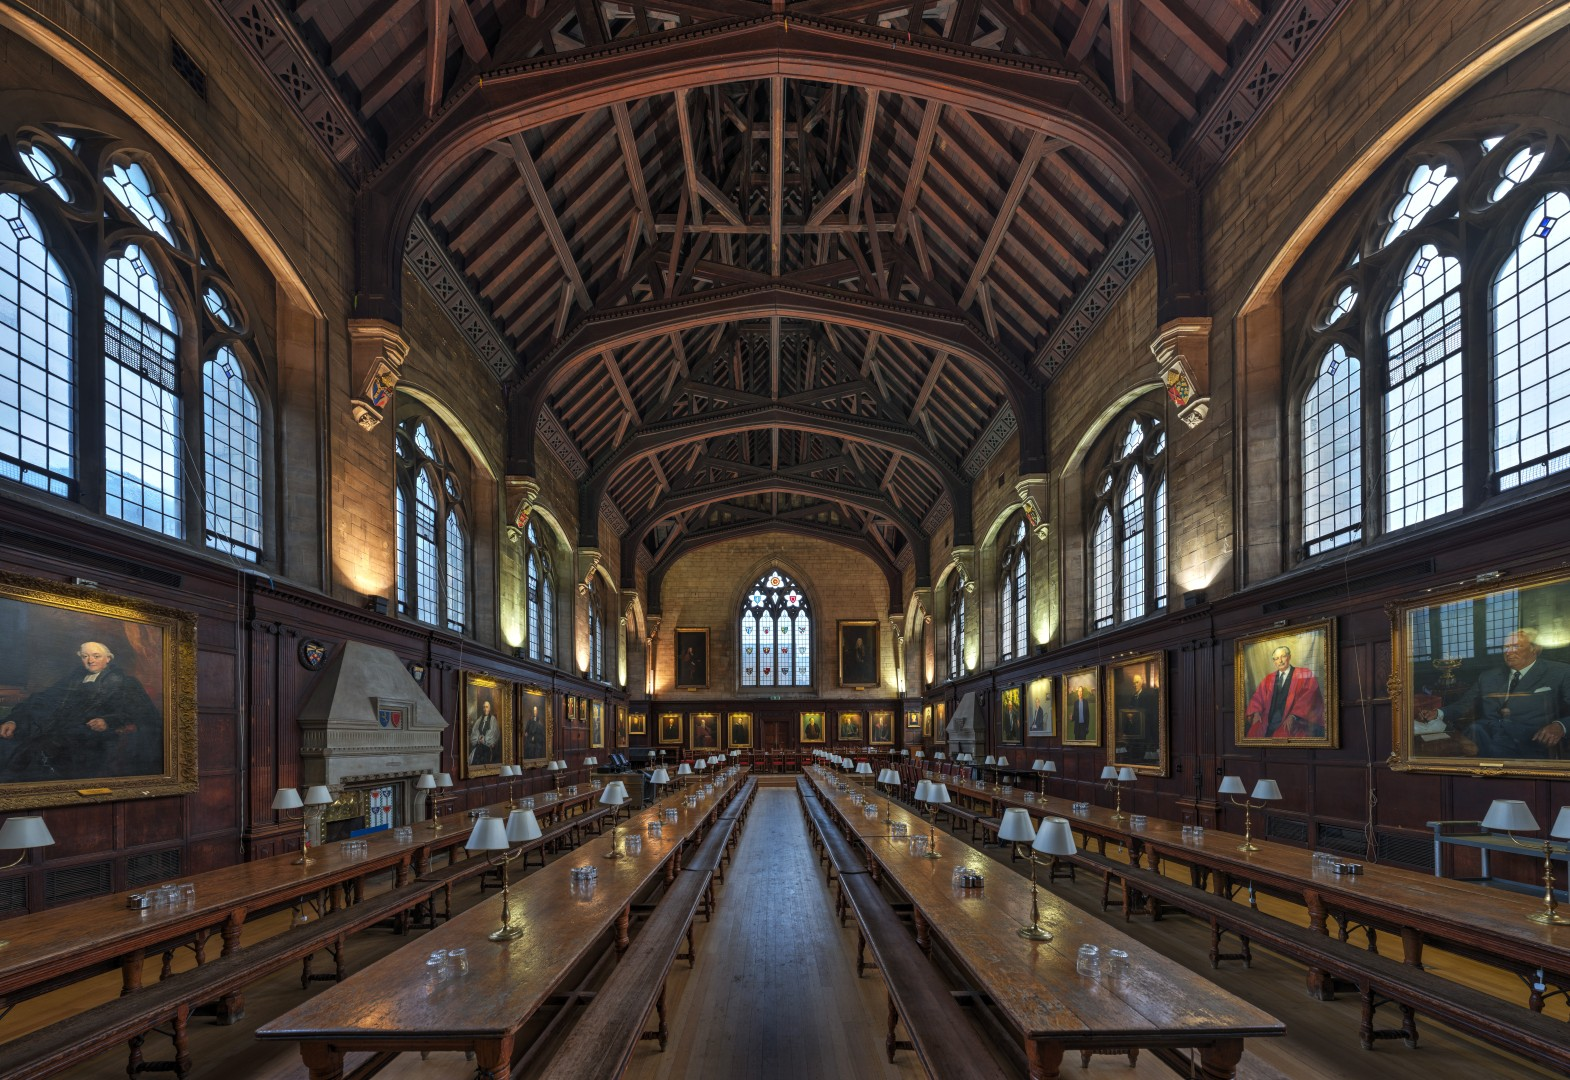 Case Study Definition In Psychology Printable Handwriting Paper Balliol College Dining Hall Oxford Diliff Large Case Study Definition In Psychology